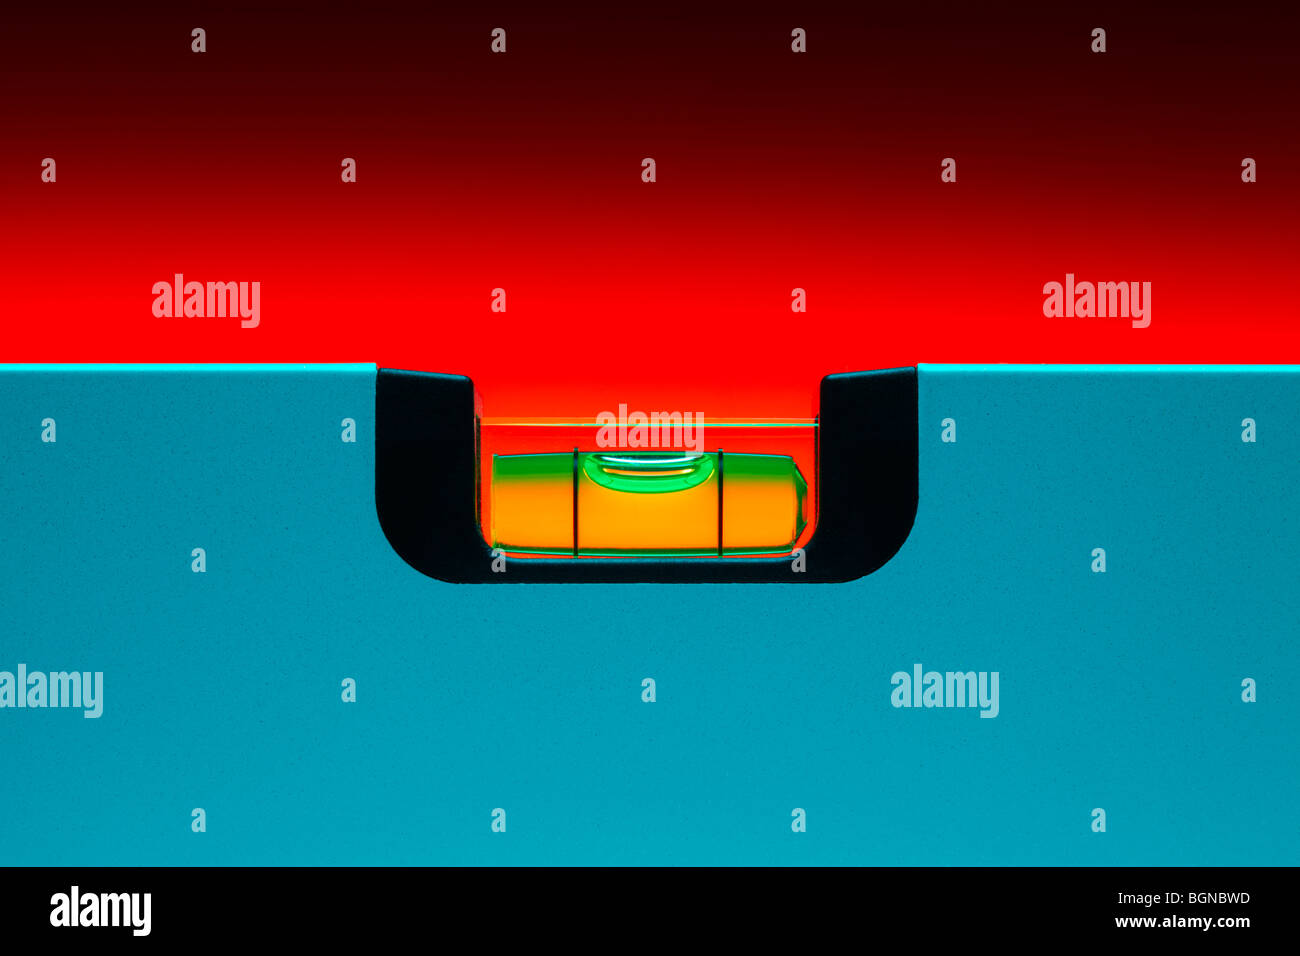 Cyan Spirit Level - Stock Image